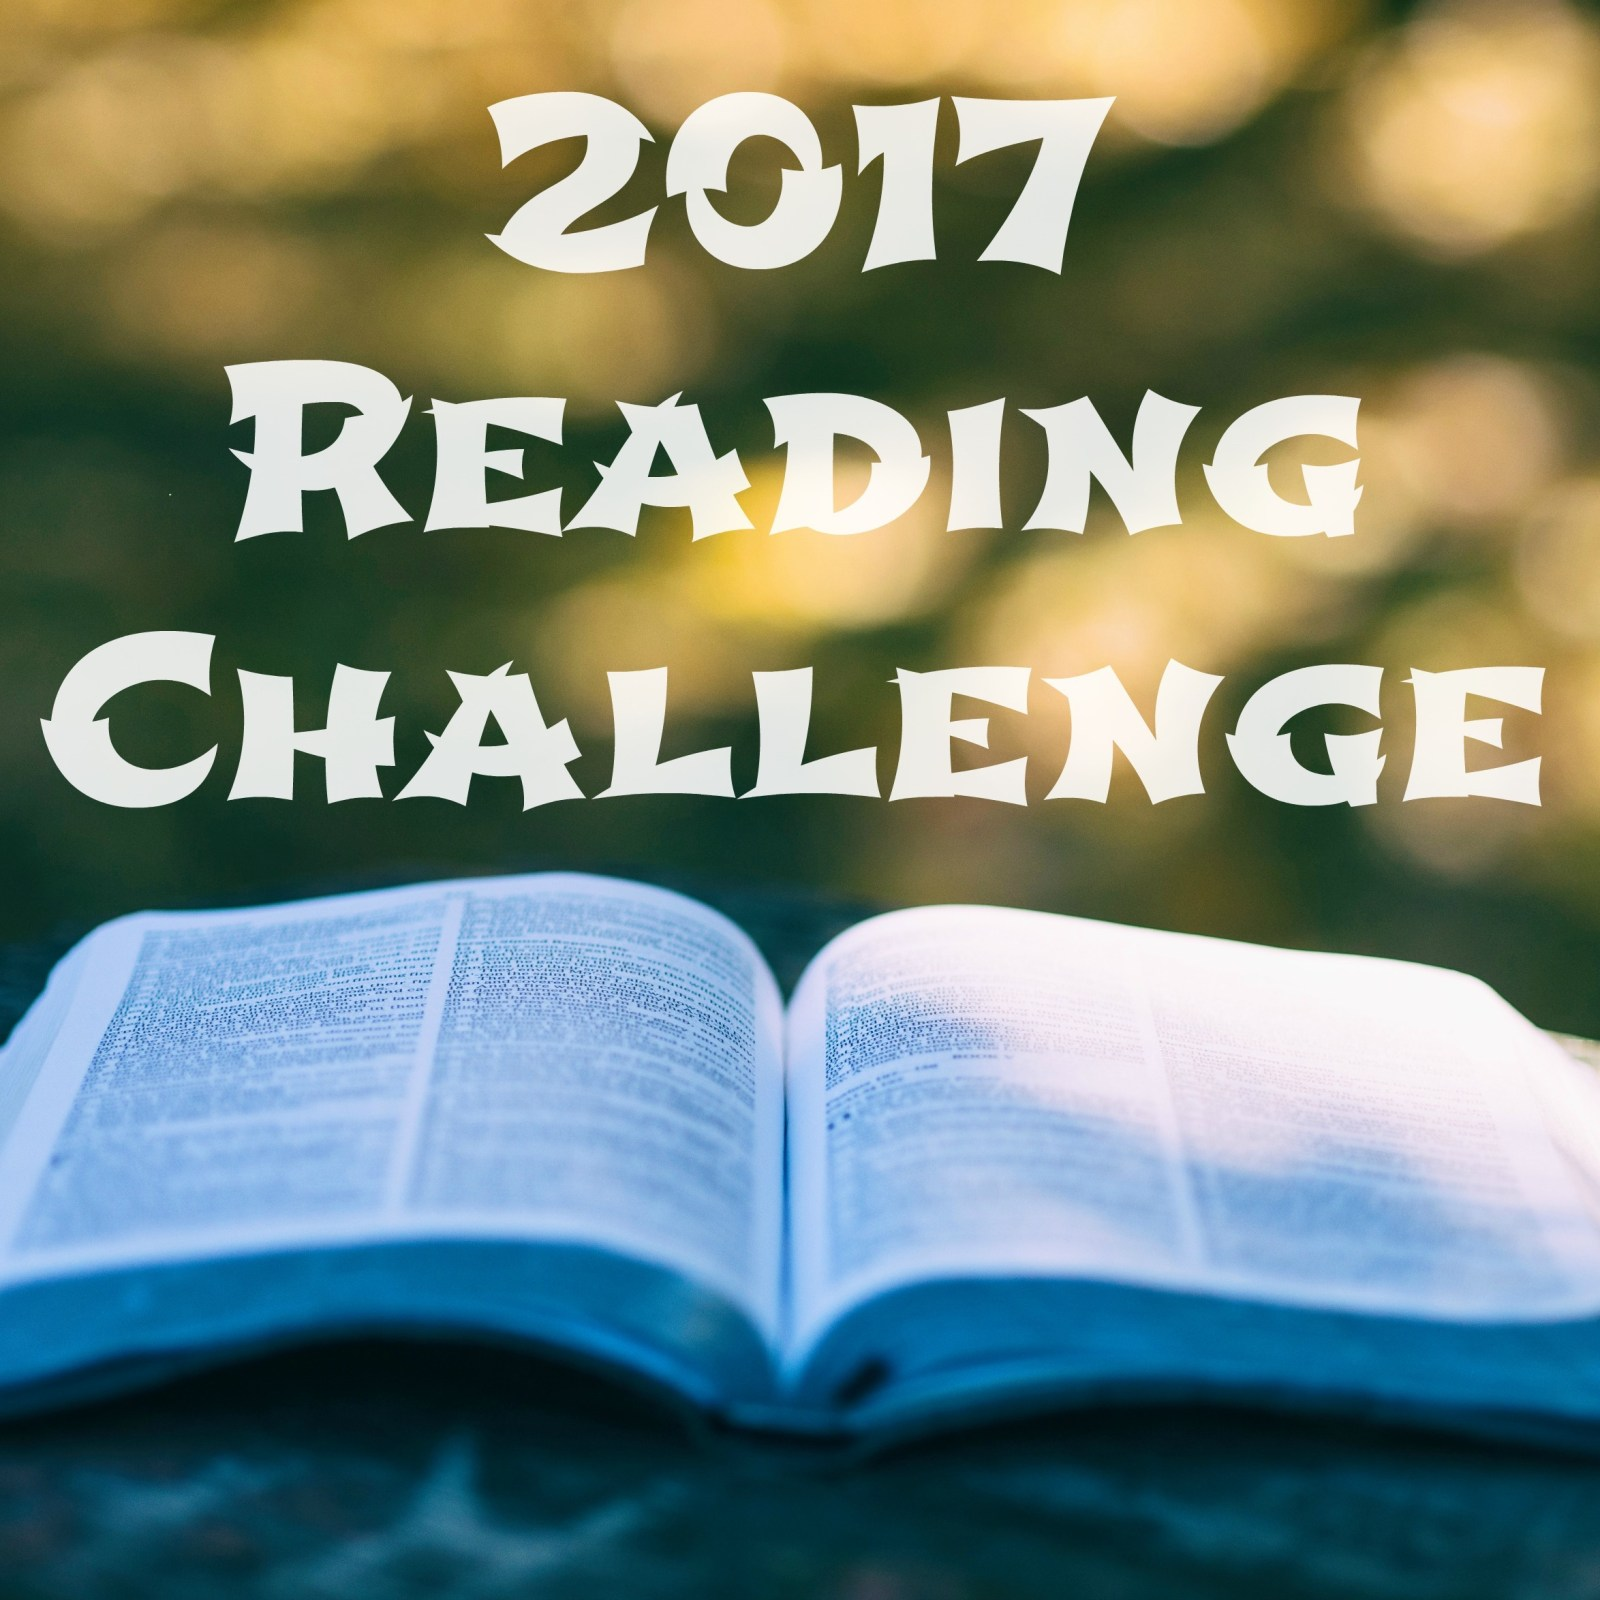 2017 Reading Challenge A Book Written During The 1920s